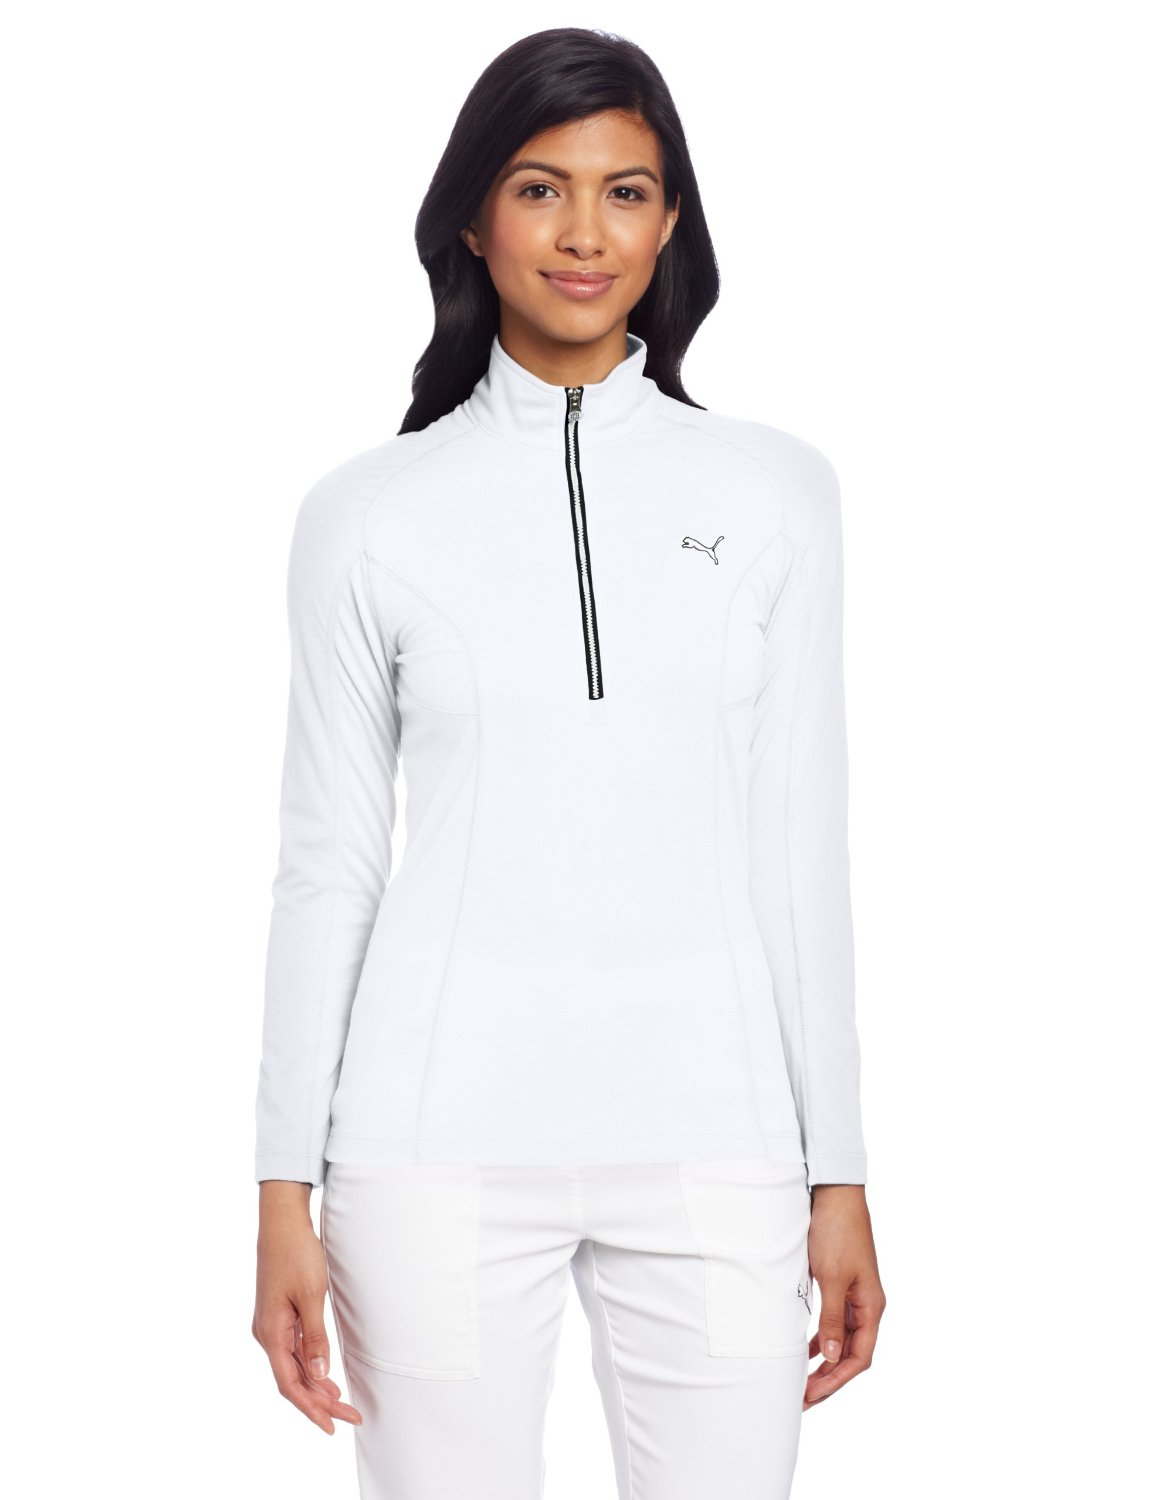 Womens Puma Long Sleeve Golf Tops